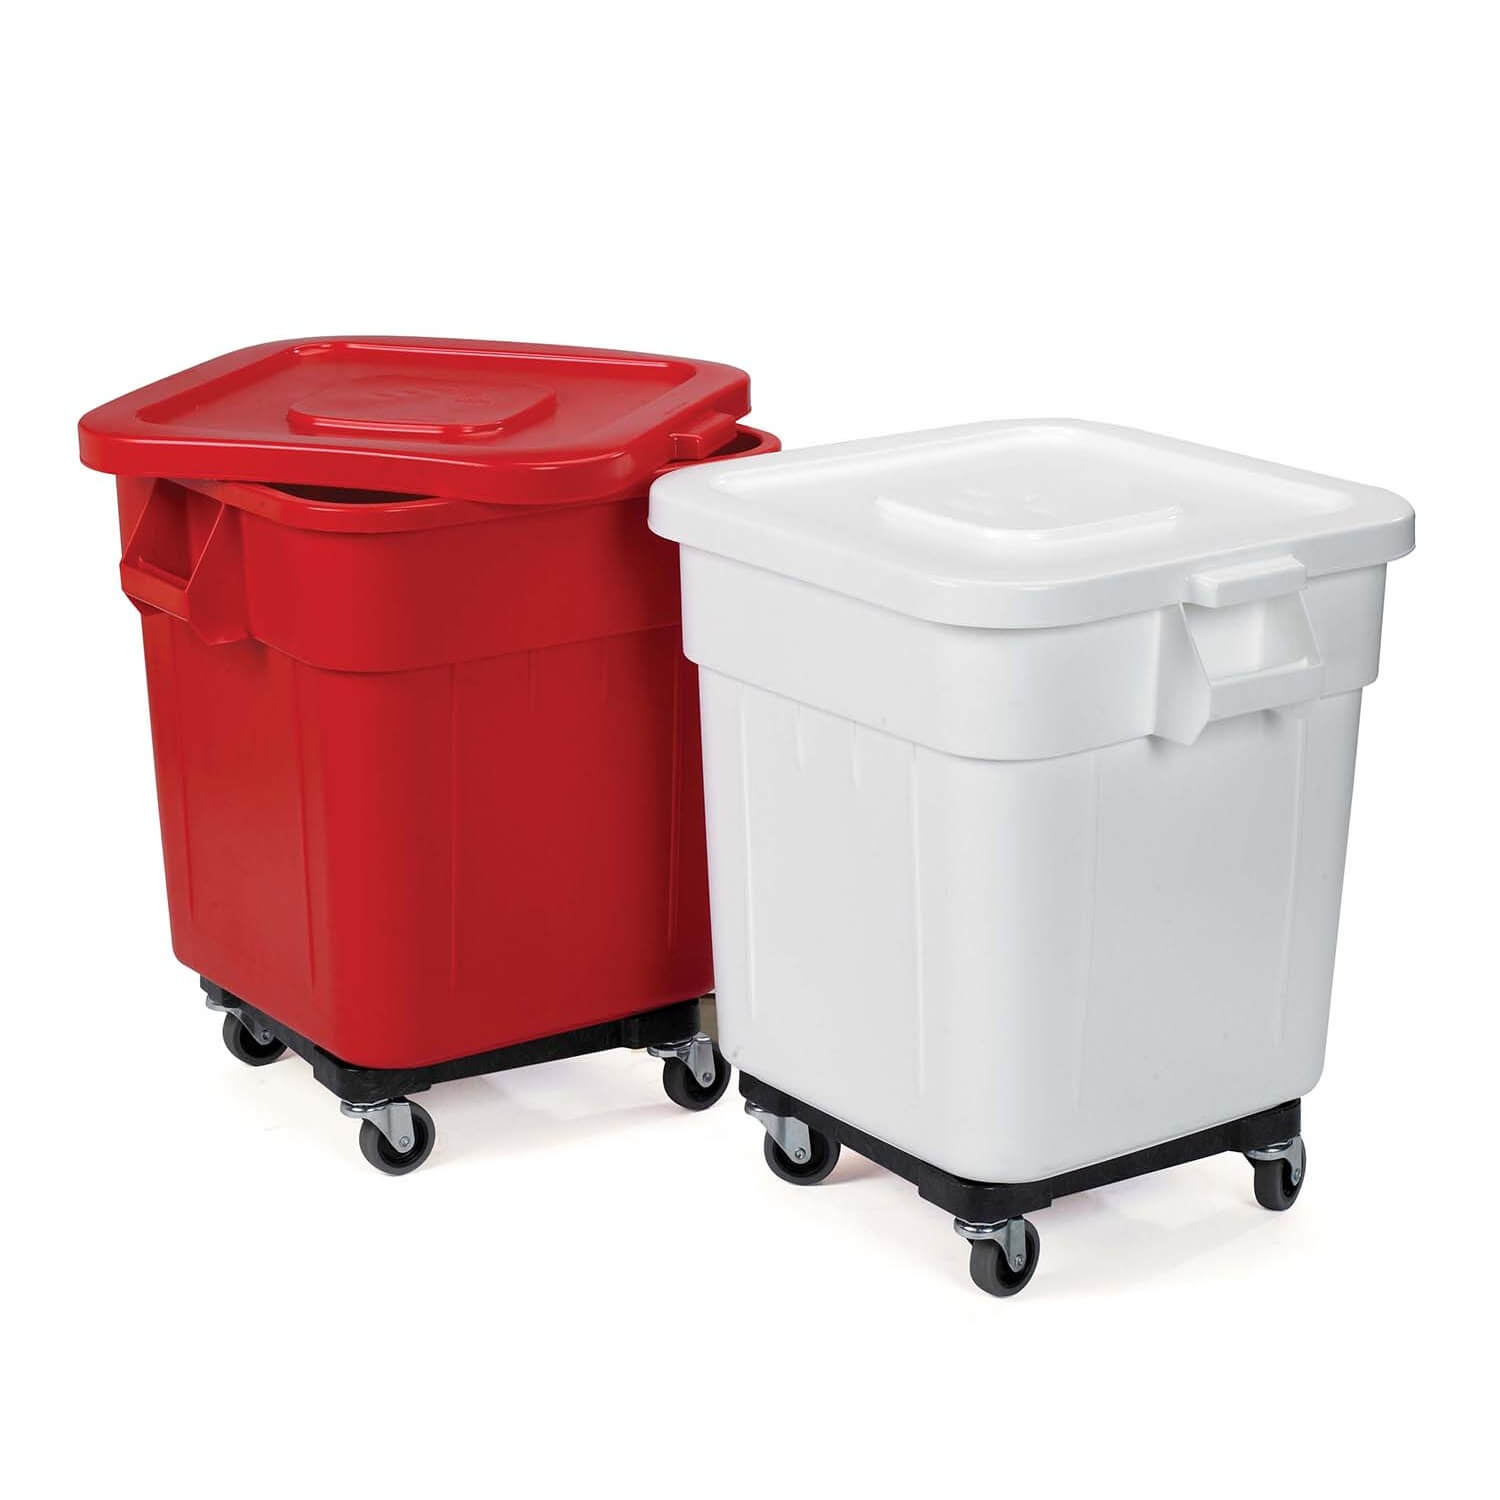 Laundry Bin With Wheels Huskee Laundry Bin 140 Litre Capacity Red Or White 57